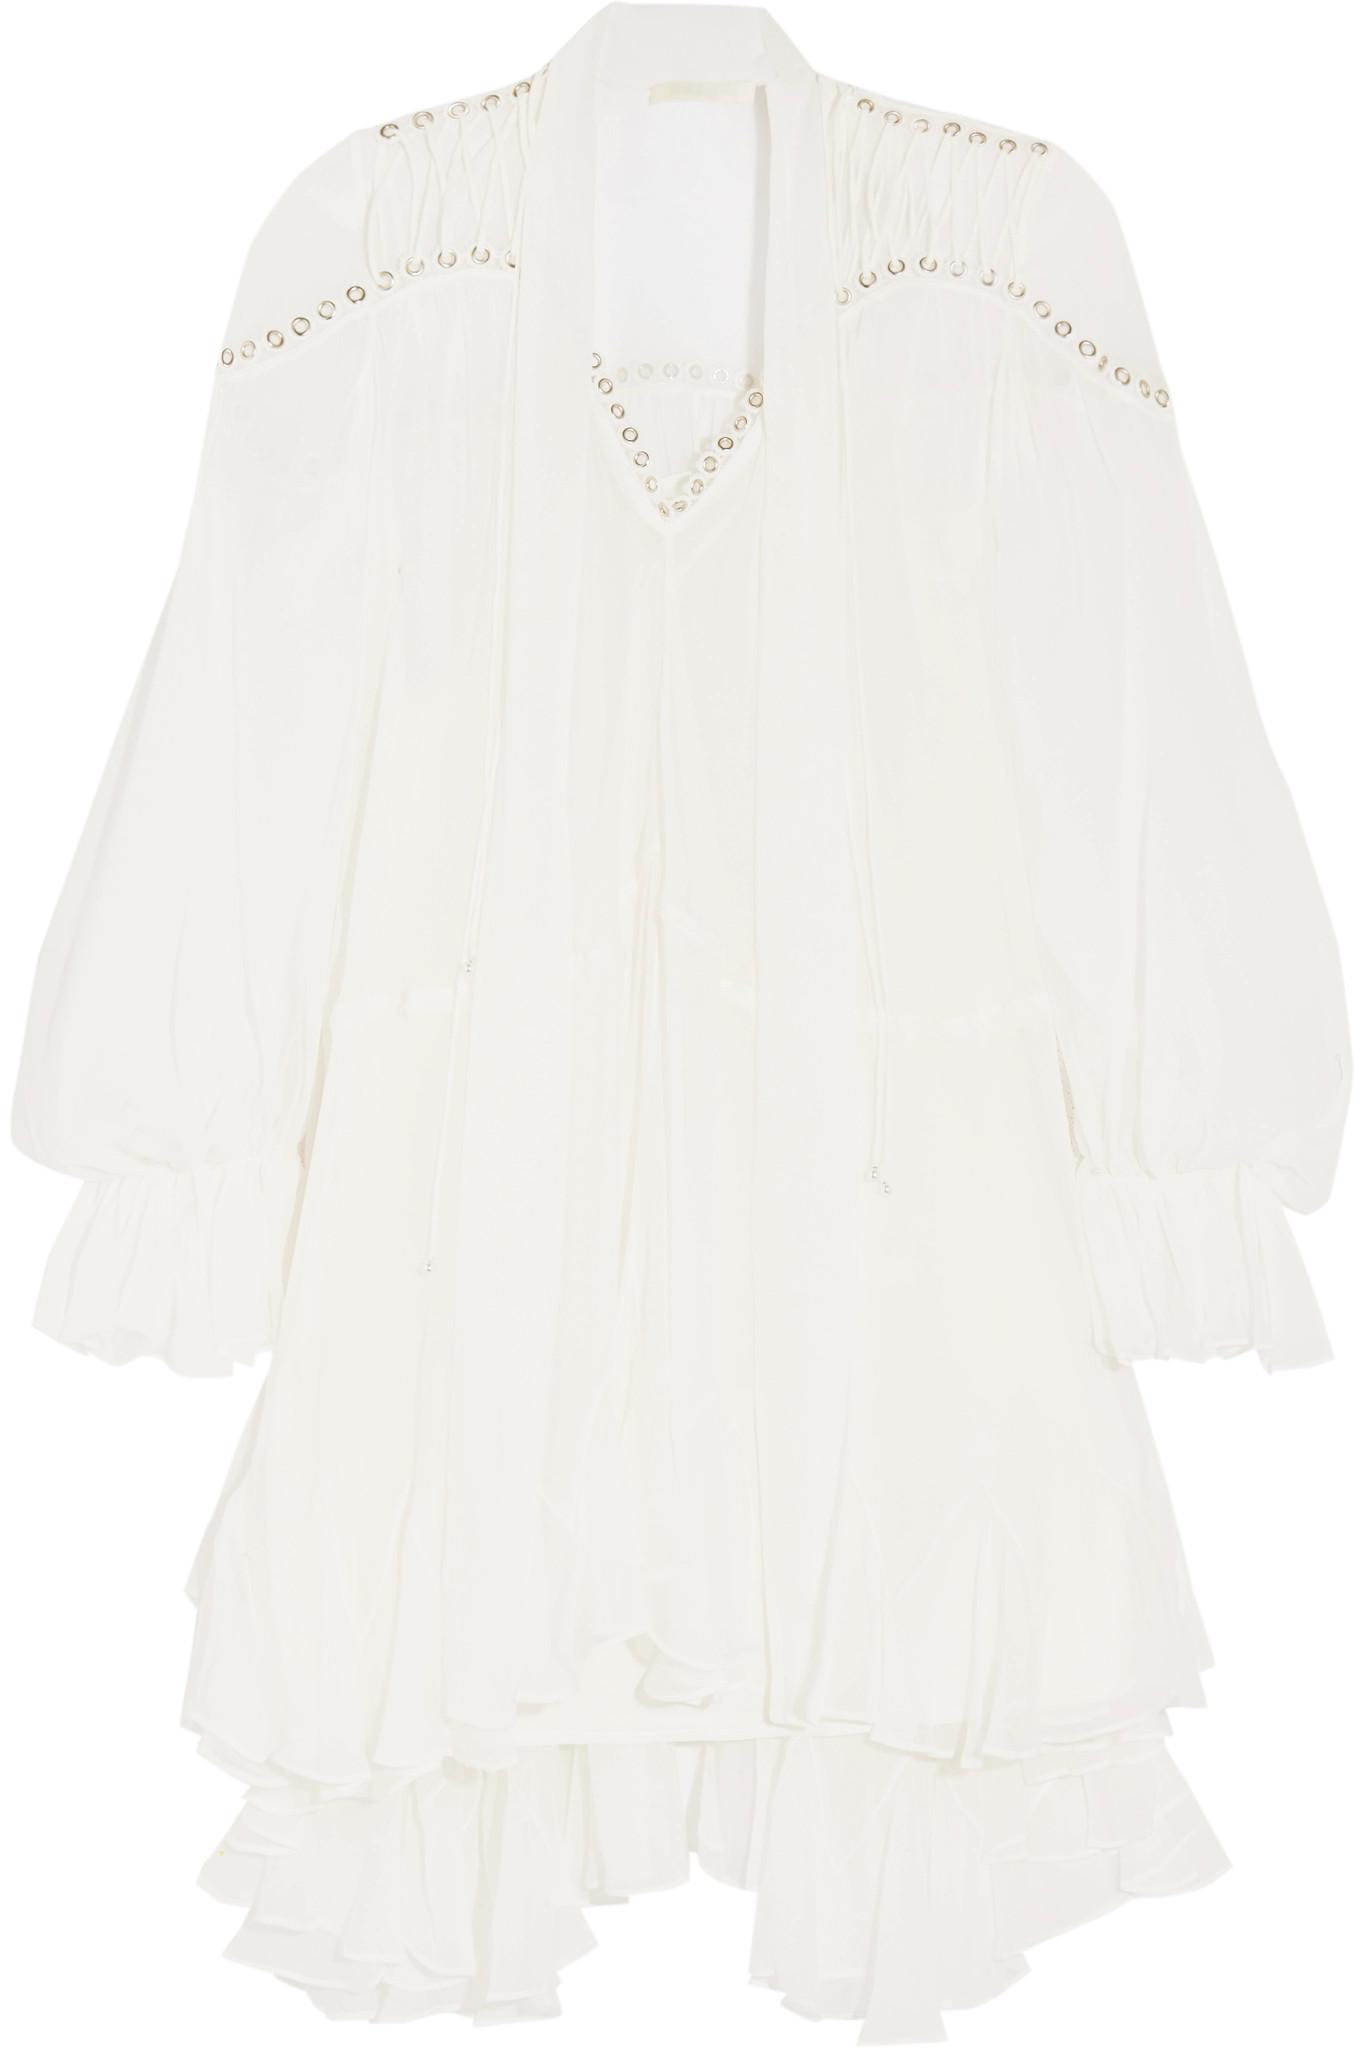 Eyelet-embellished Silk-chiffon Mini Dress - White Jonathan Simkhai g2ABuzN